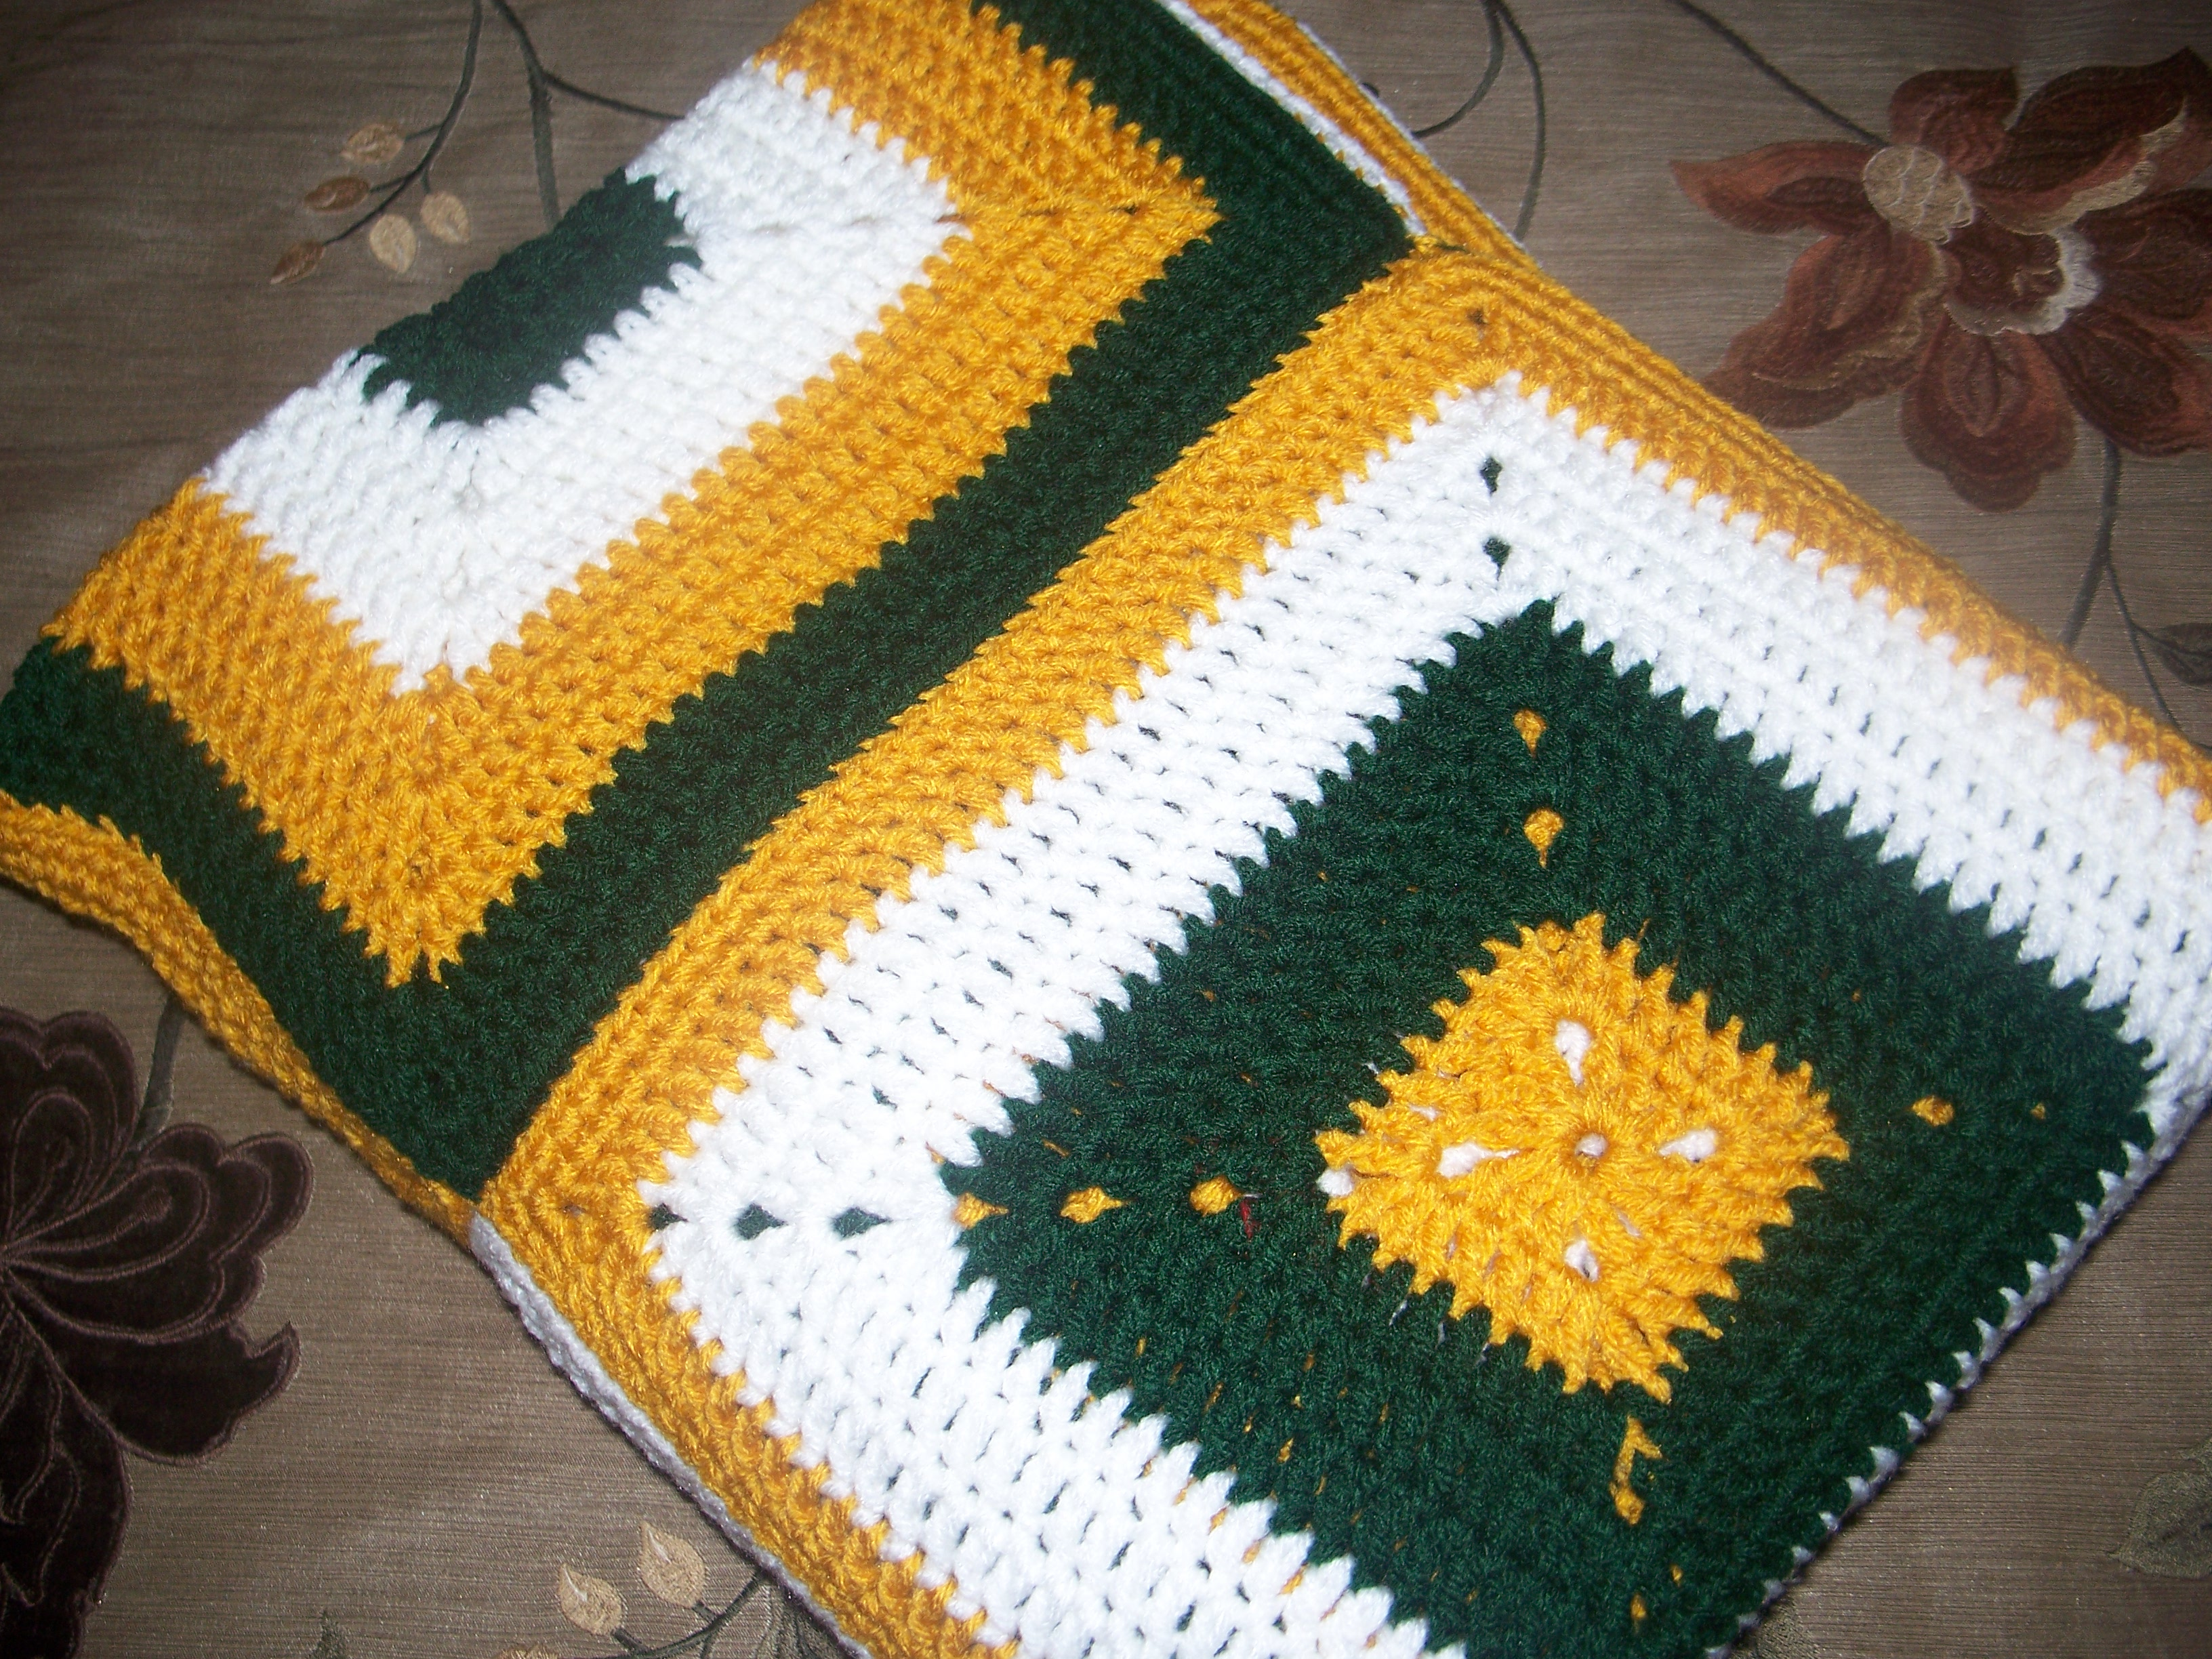 Crochet Pattern Green Bay Packer Afghan : Crochet N Faith Leeum Aghan Online Store Powered by ...